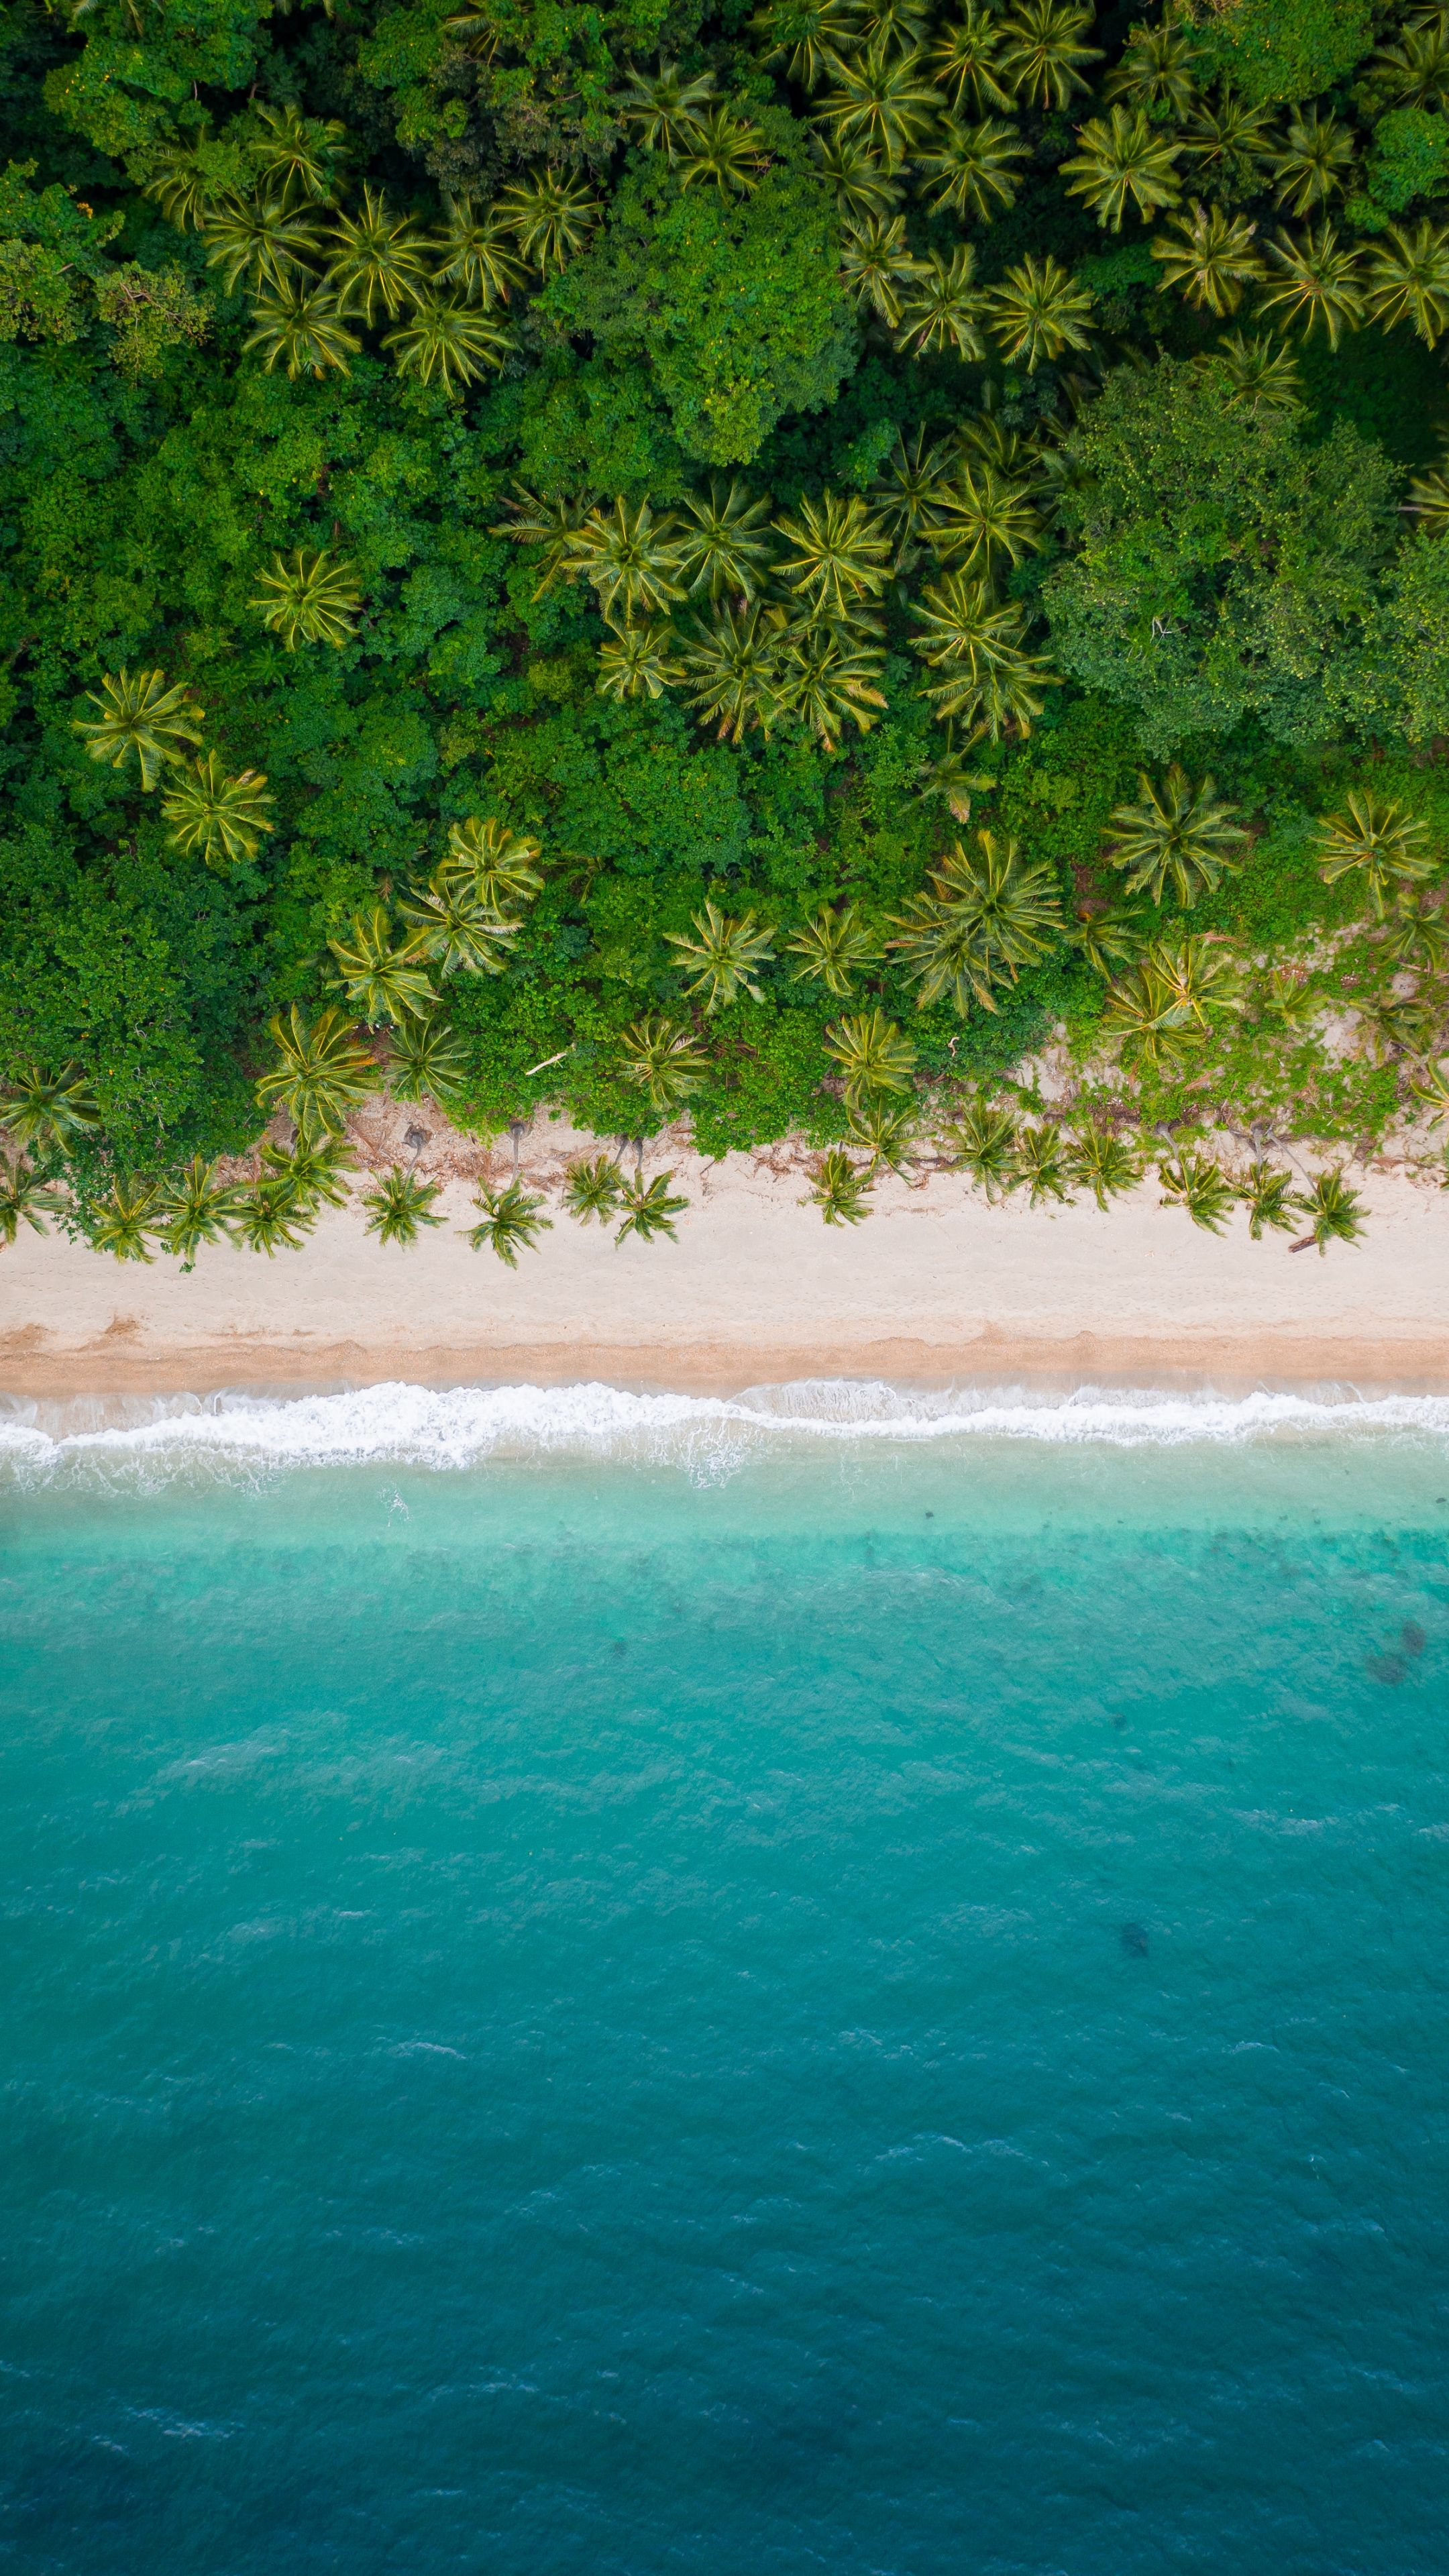 Download Beach Clam And Adorable Aerial View Beautiful Wallpaper For Screen 2160x3840 4k Sony Xperia Z5 Ocean Wallpaper Beach Wallpaper Scenery Wallpaper Drone aerial shot trees beach coast